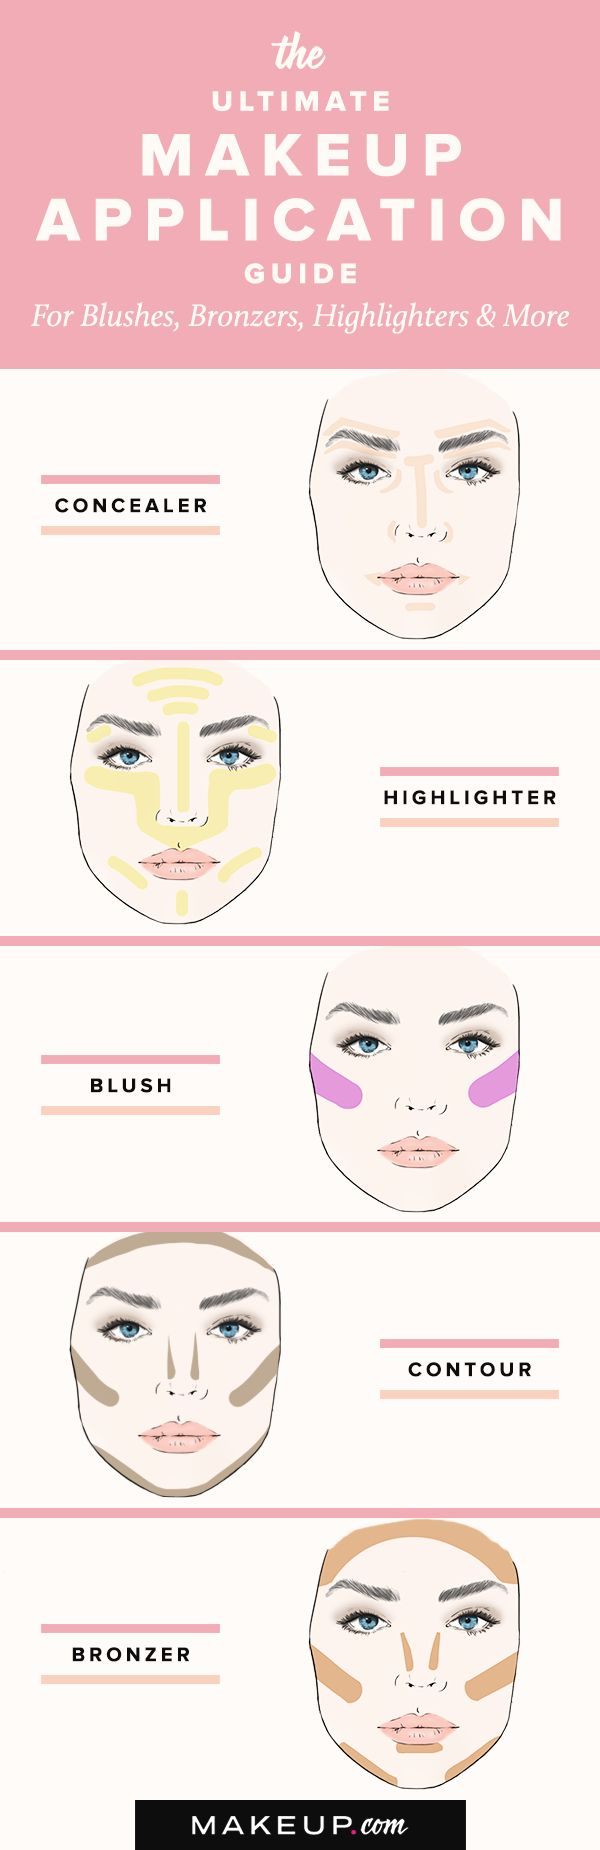 The Ultimate Makeup Application Guide for Blushes, Bronzers, Highlighters &…